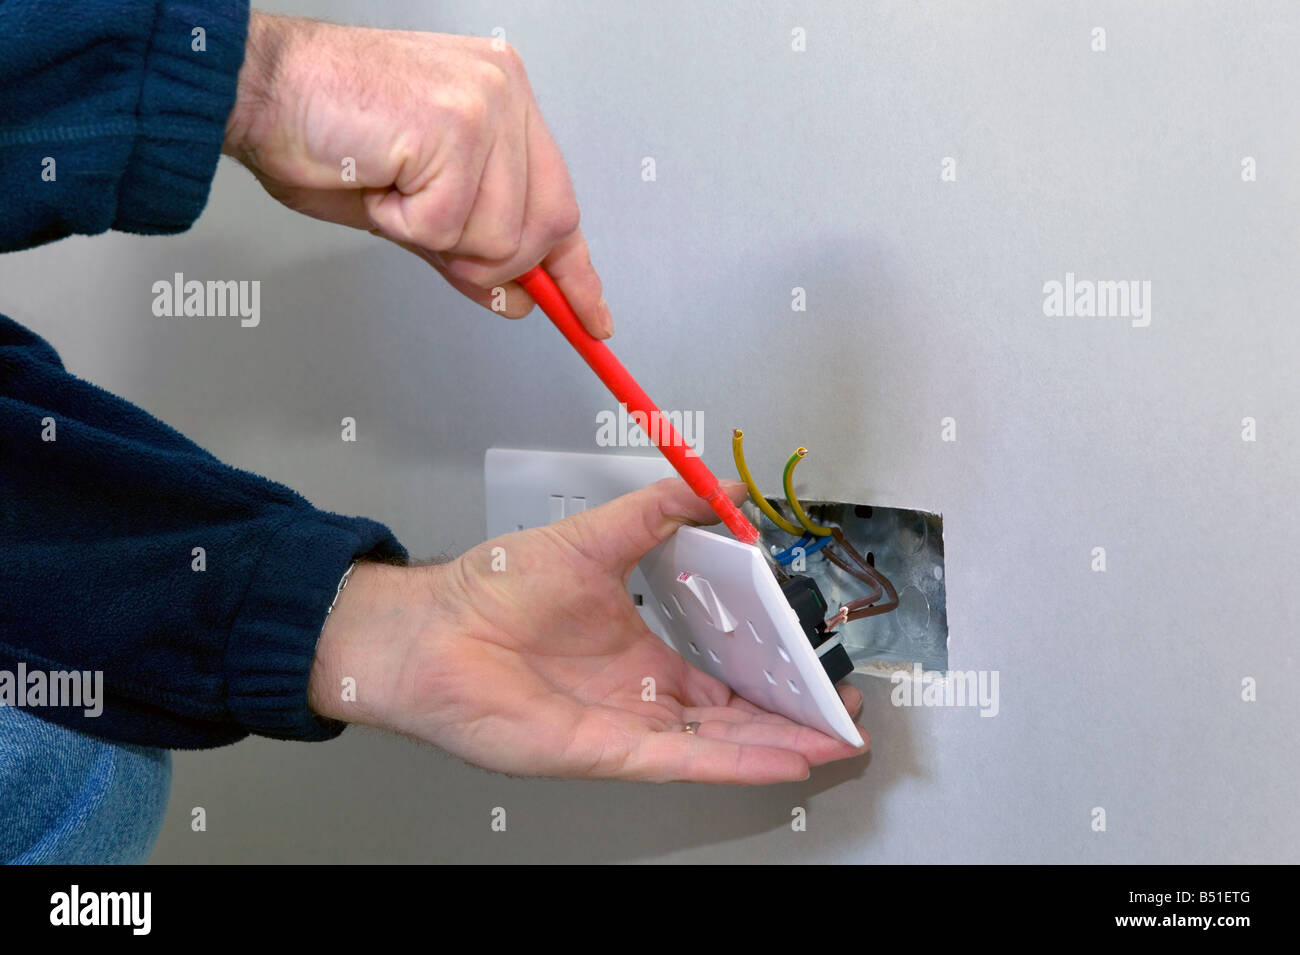 The hands of an electrician installing a power socket Stock Photo